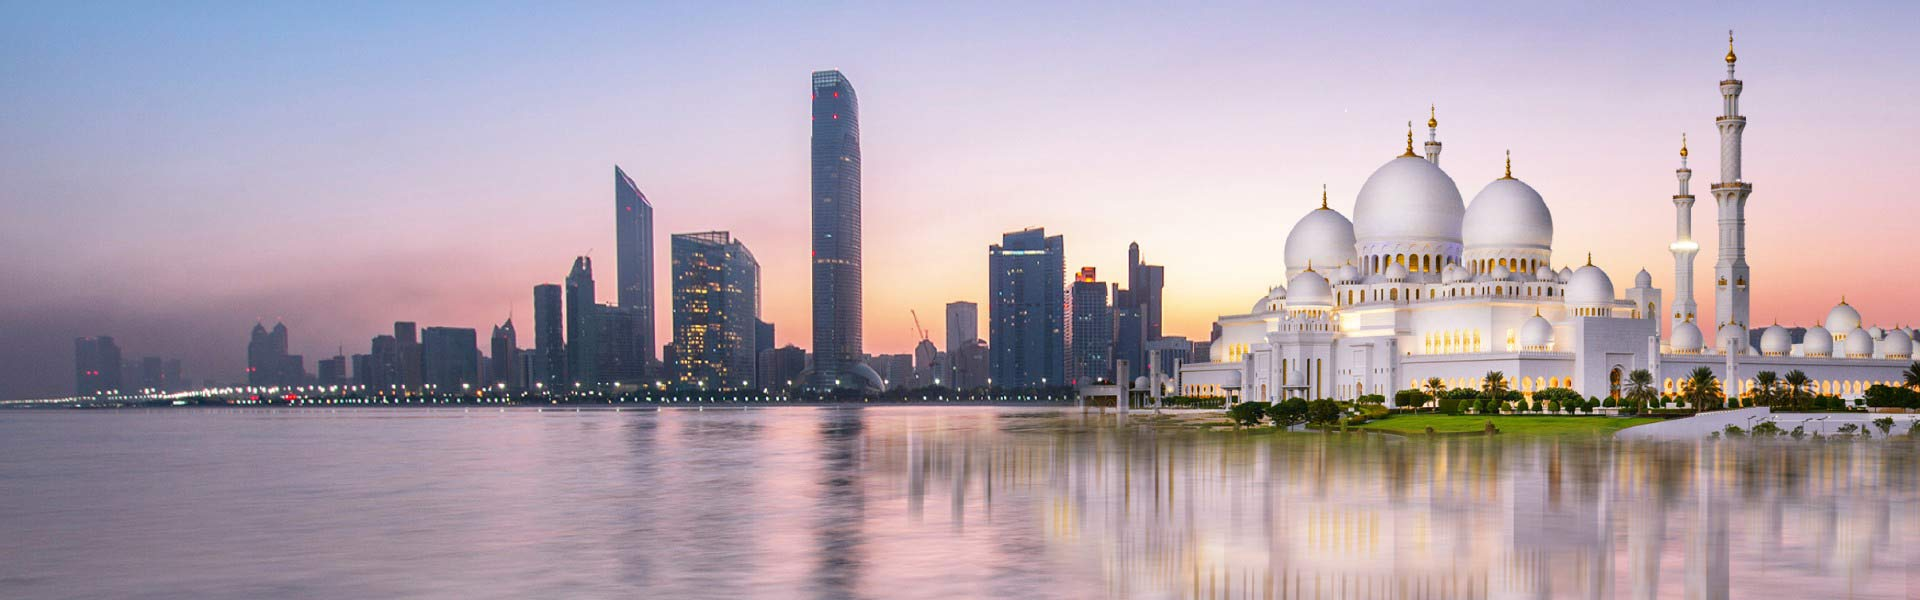 Banner image of UAE buildings and mosques a beautiful view